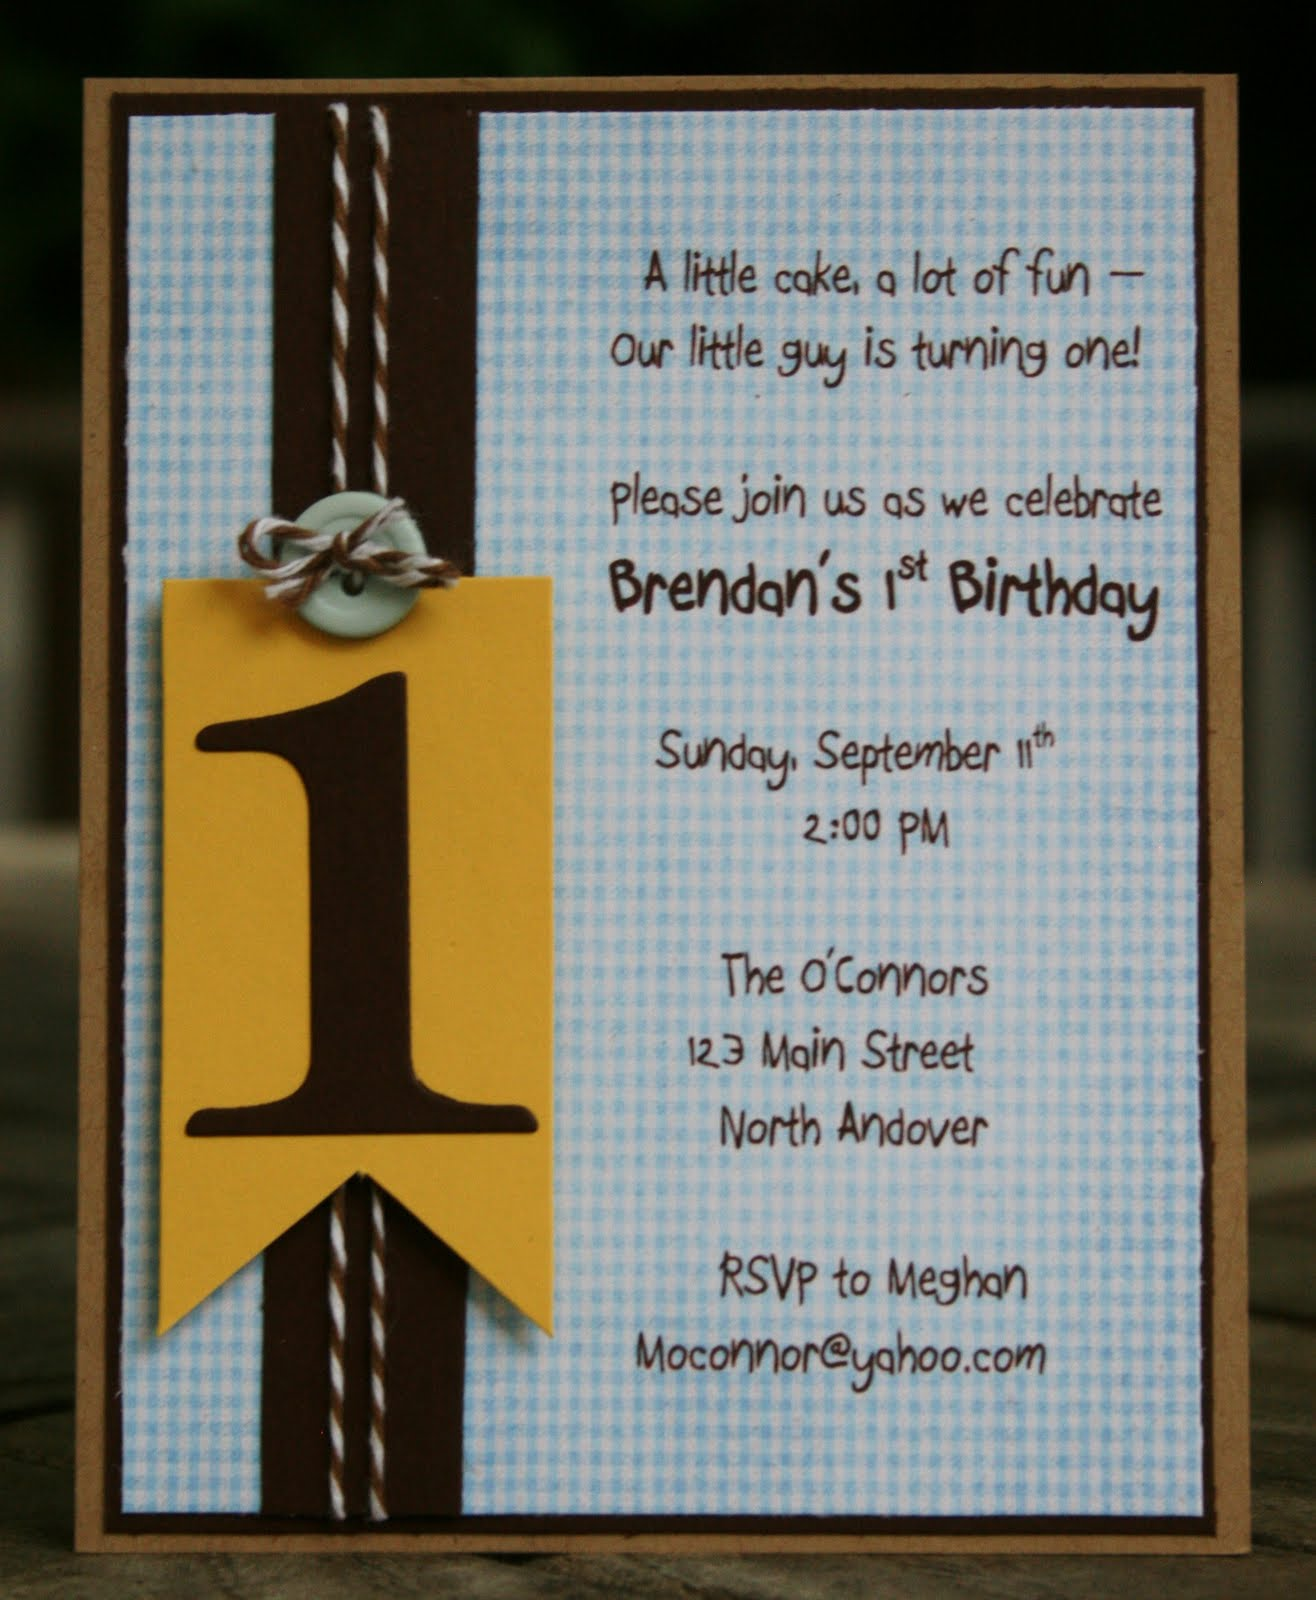 Birthday Quotes For Invitations: Quotes For 1st Birthday Invitations. QuotesGram